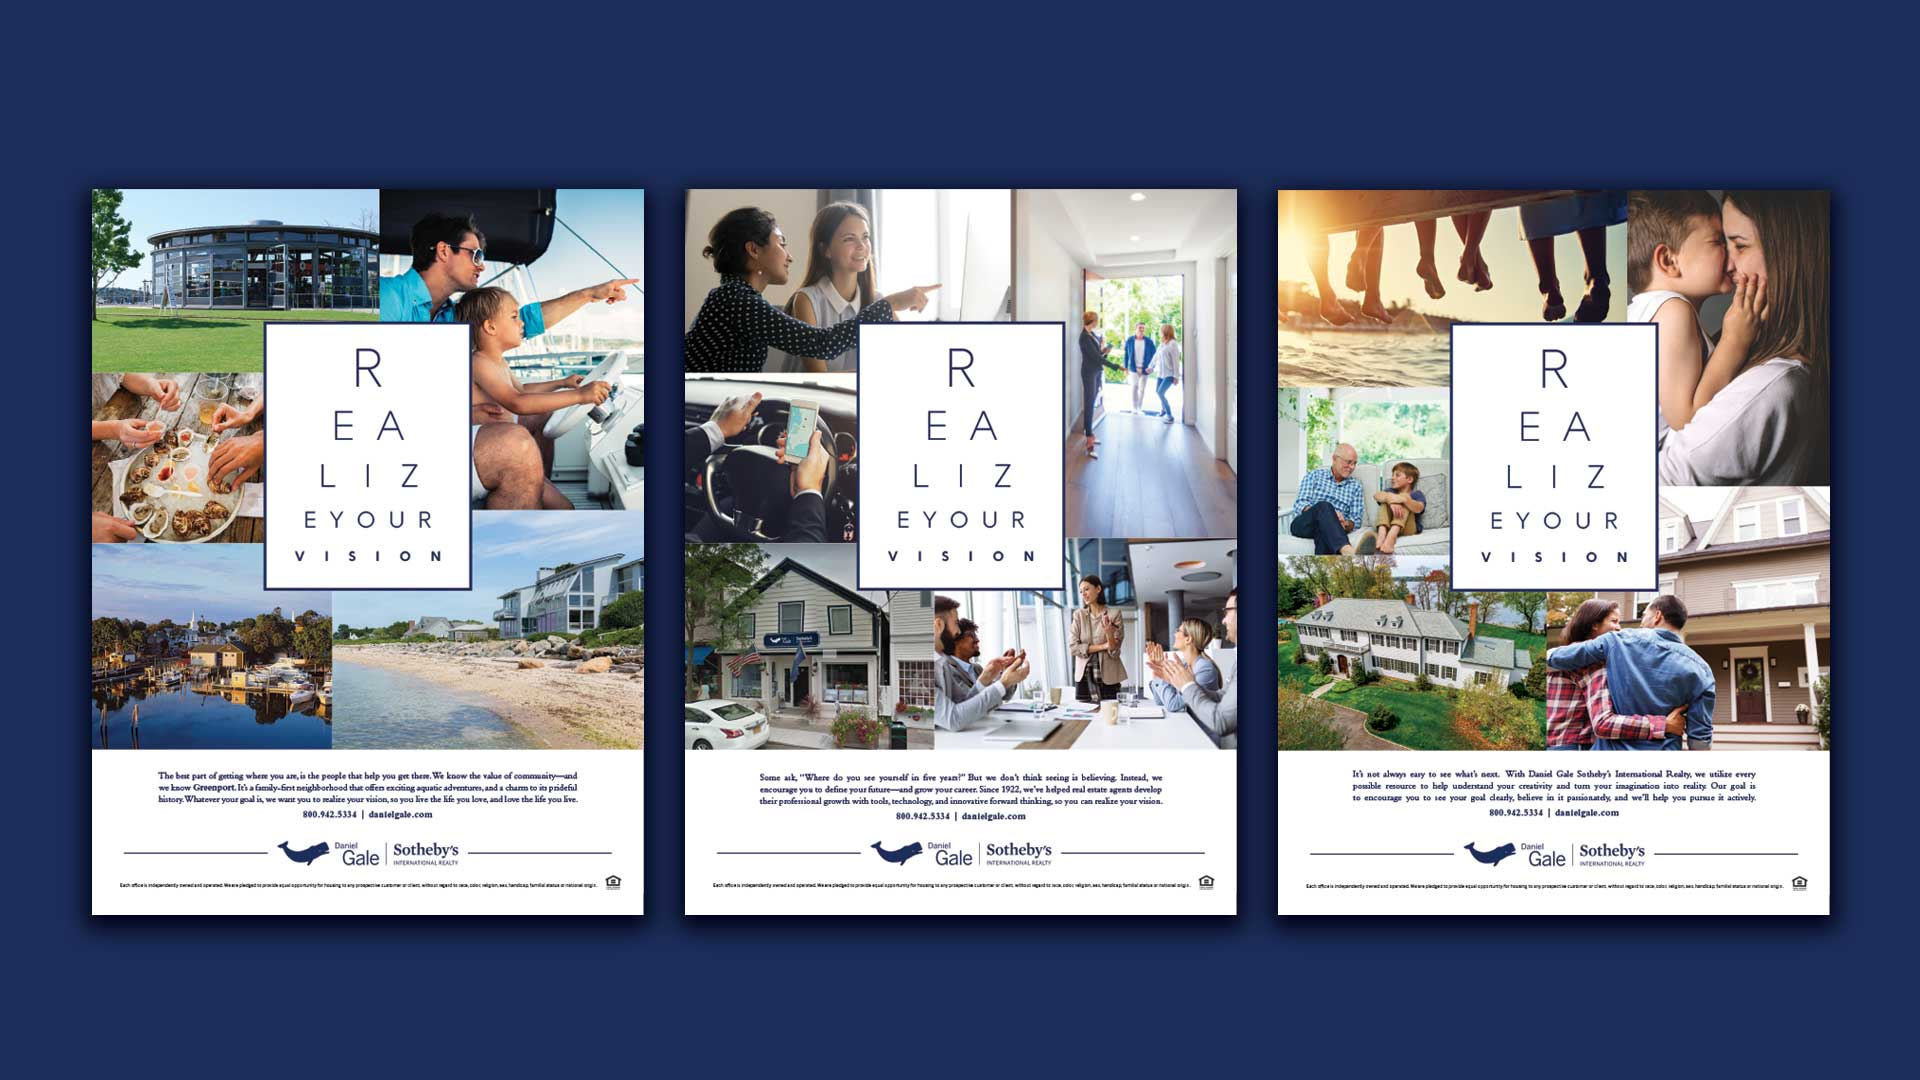 Print Ad Campaign - Sotheby's International Realty - Realize Your Vision